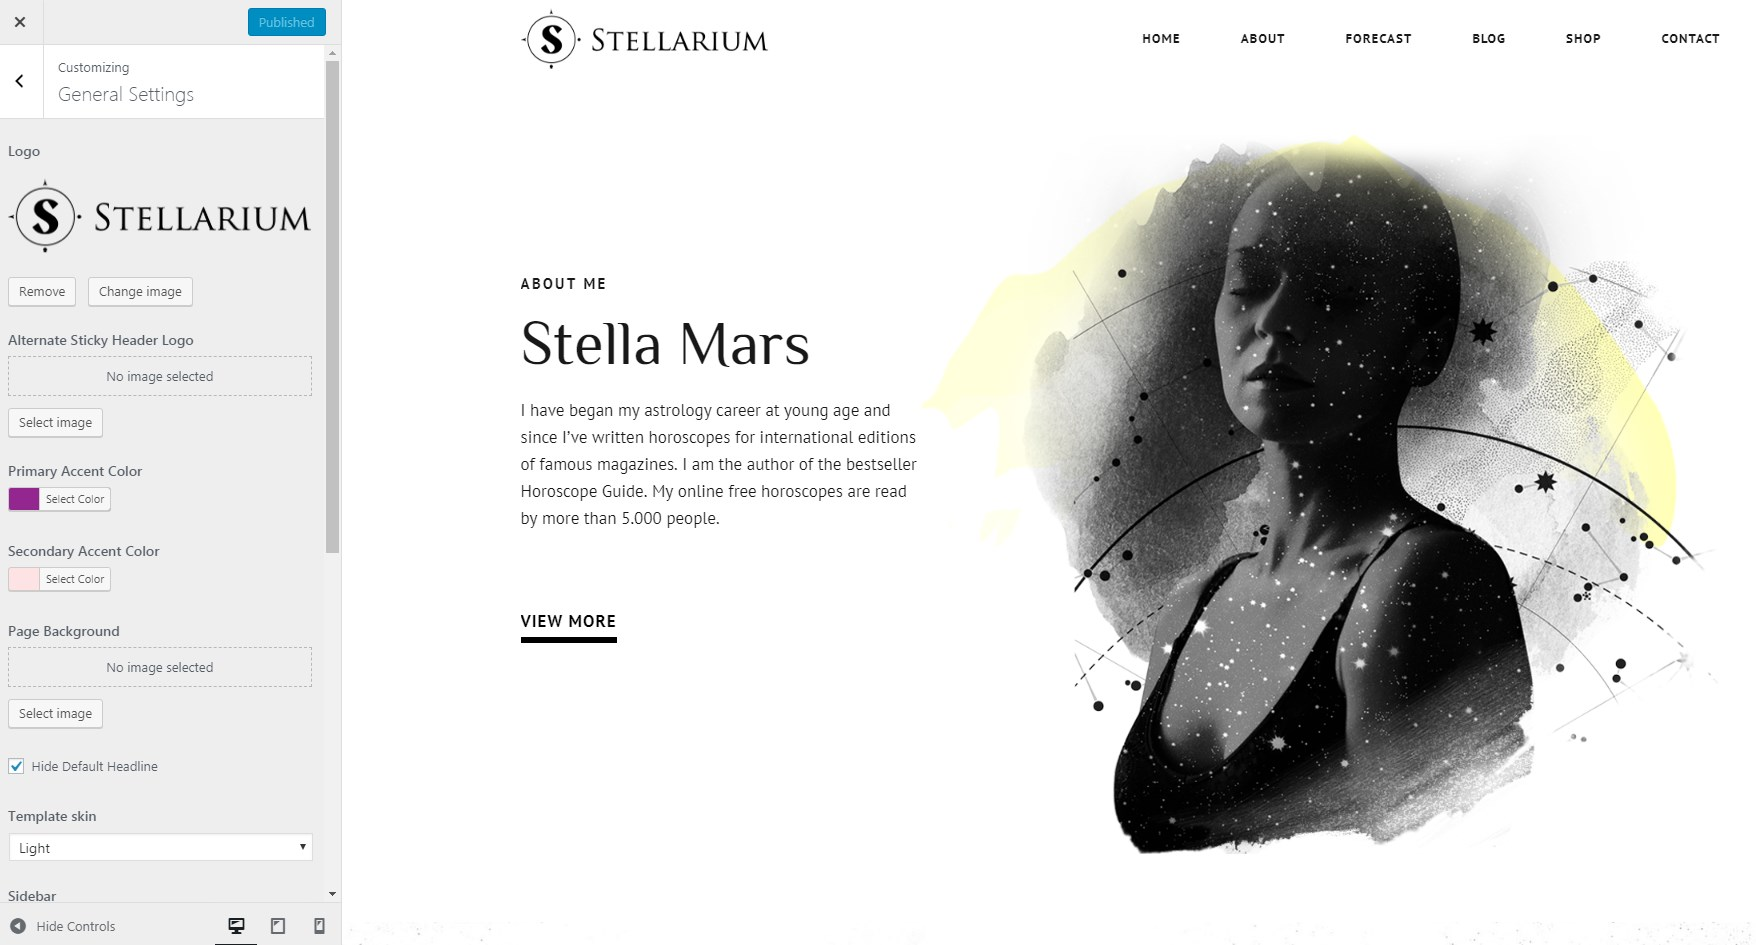 http://documentation.bold-themes.com/stellarium/wp-content/uploads/sites/34/2018/06/stellarium-customize-02.jpg